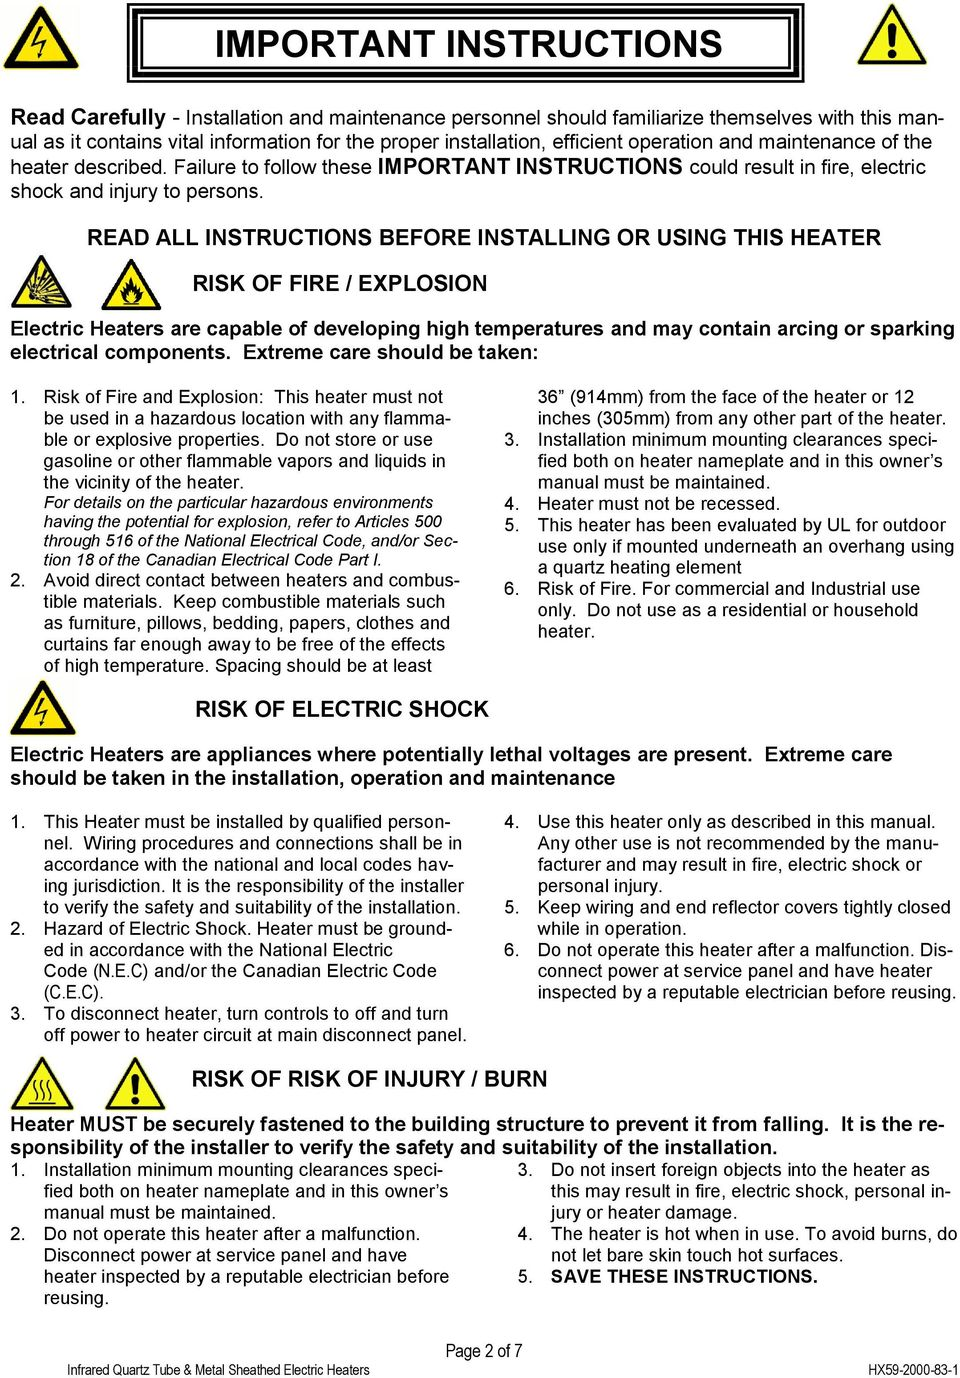 READ ALL INSTRUCTIONS BEFORE INSTALLING OR USING THIS RISK OF FIRE / EXPLOSION Electric Heaters are capable of developing high temperatures and may contain arcing or sparking electrical components.